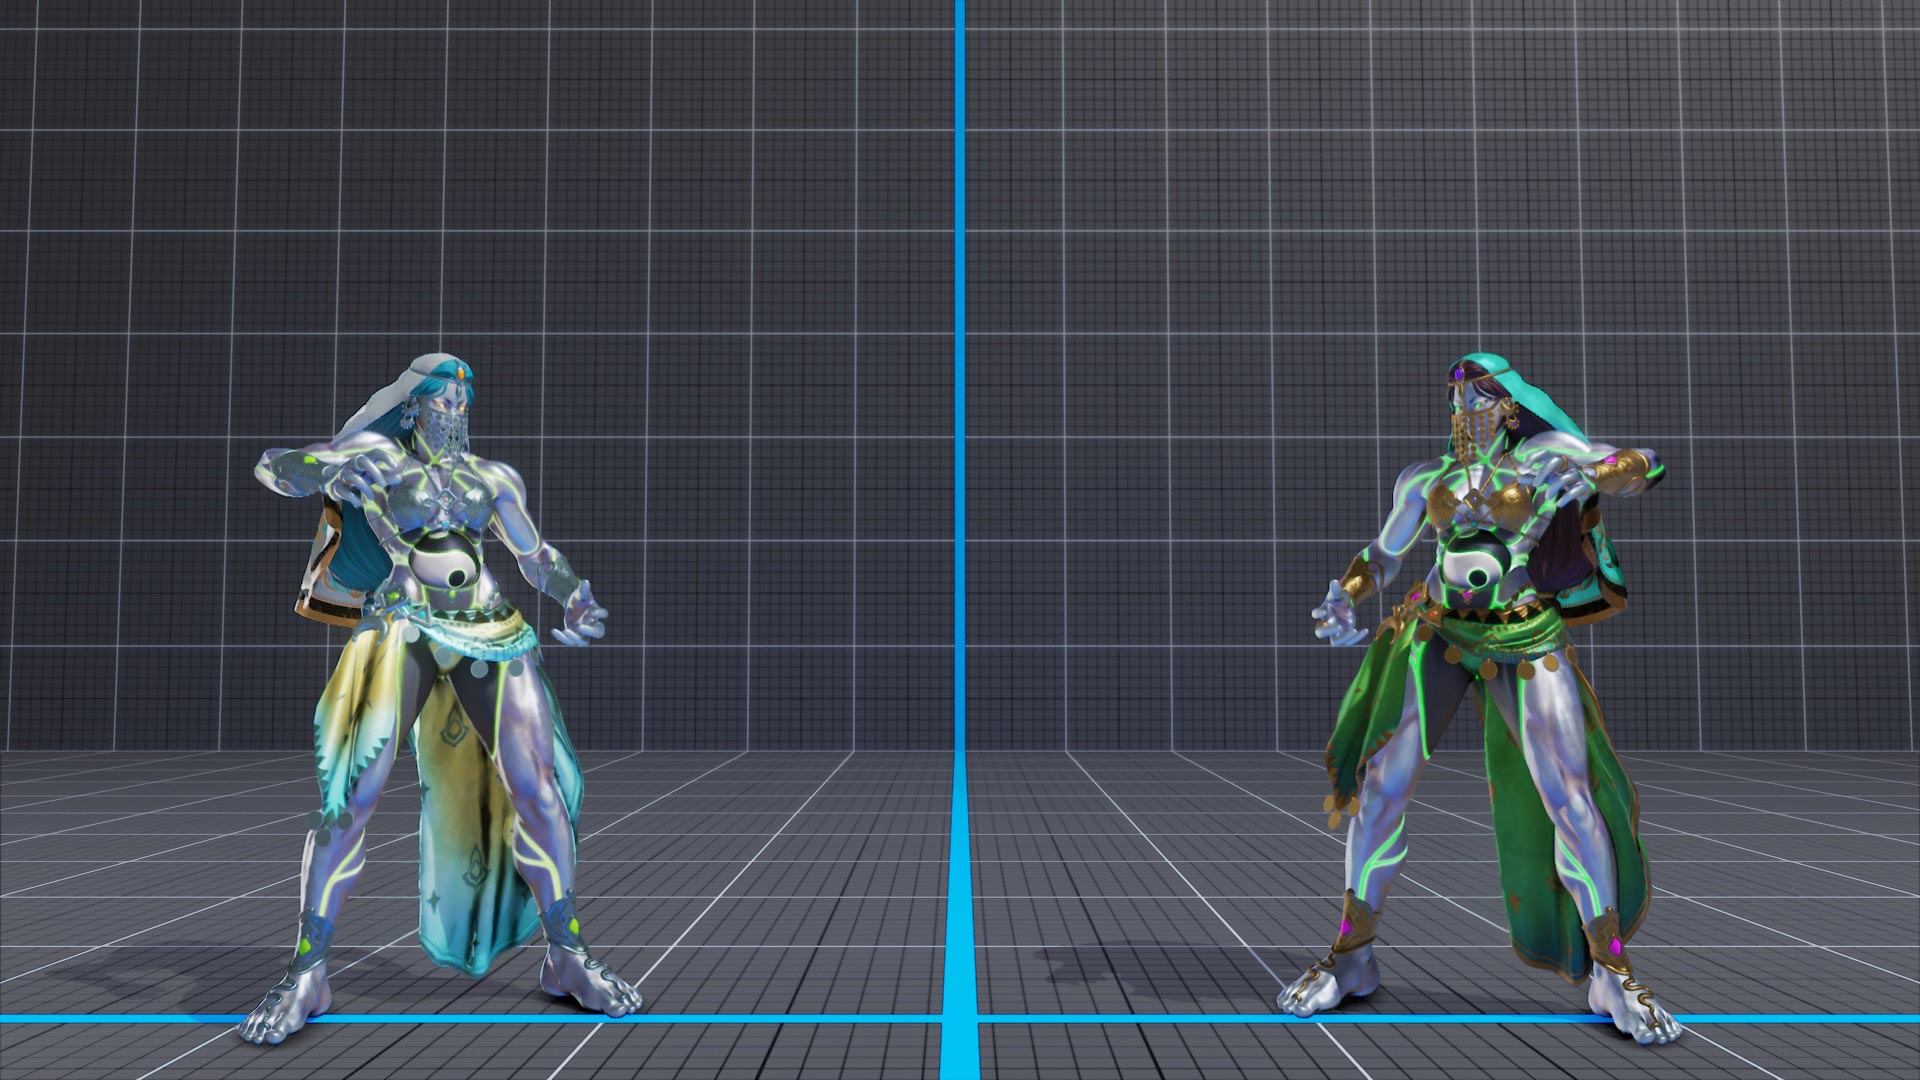 Seth new CPT costume colors 5 out of 5 image gallery